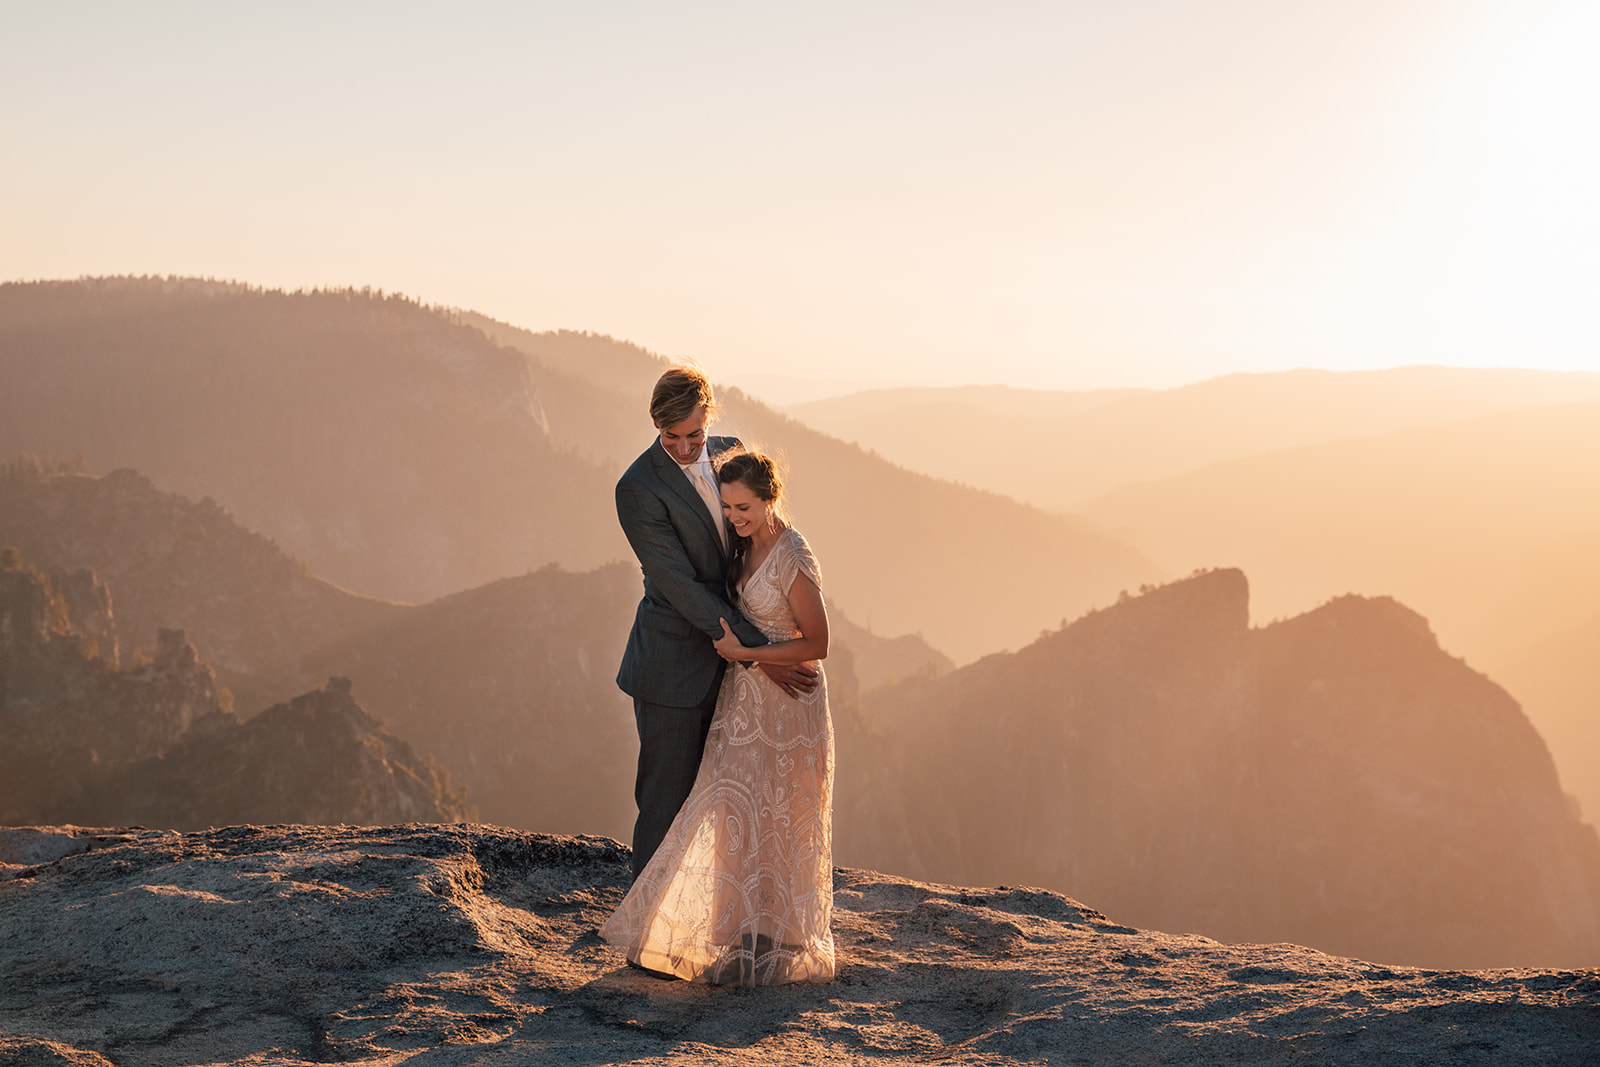 couple-eloping-yosemite-mountains